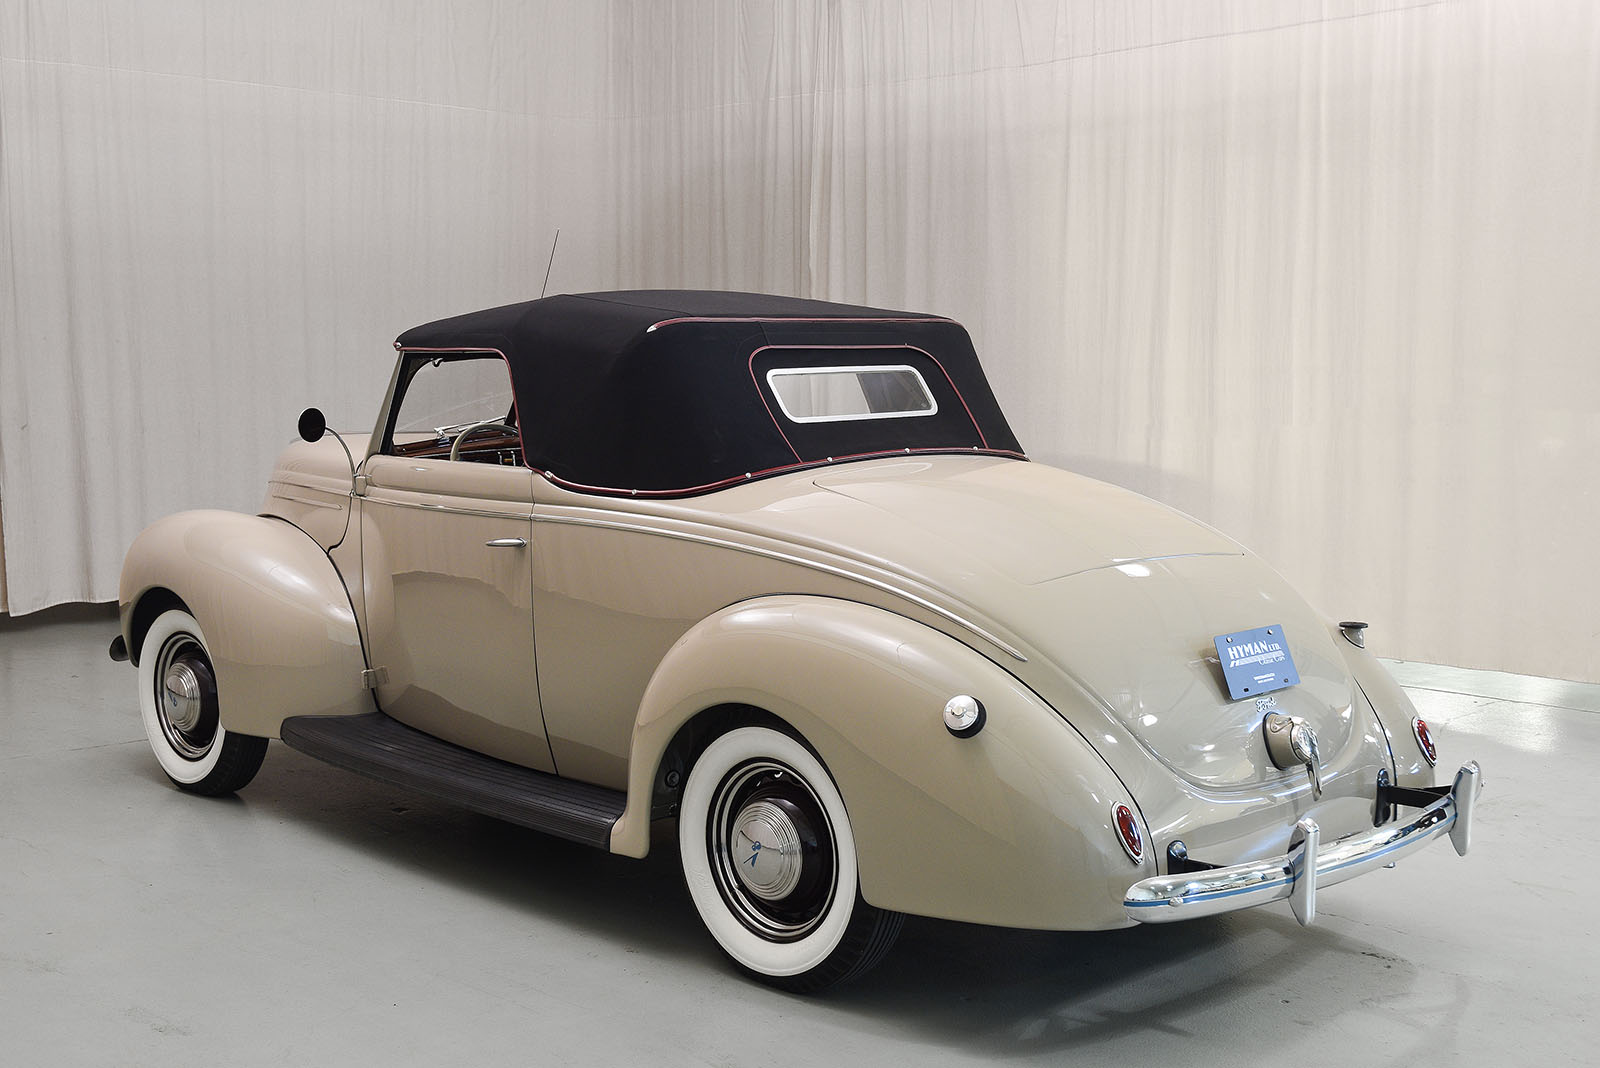 Johnny Depp Corvette moreover Large further Px Packard Twelve Presidential Car Top Toyota Automobile Museum moreover  besides Passenger Side. on 1939 lincoln car